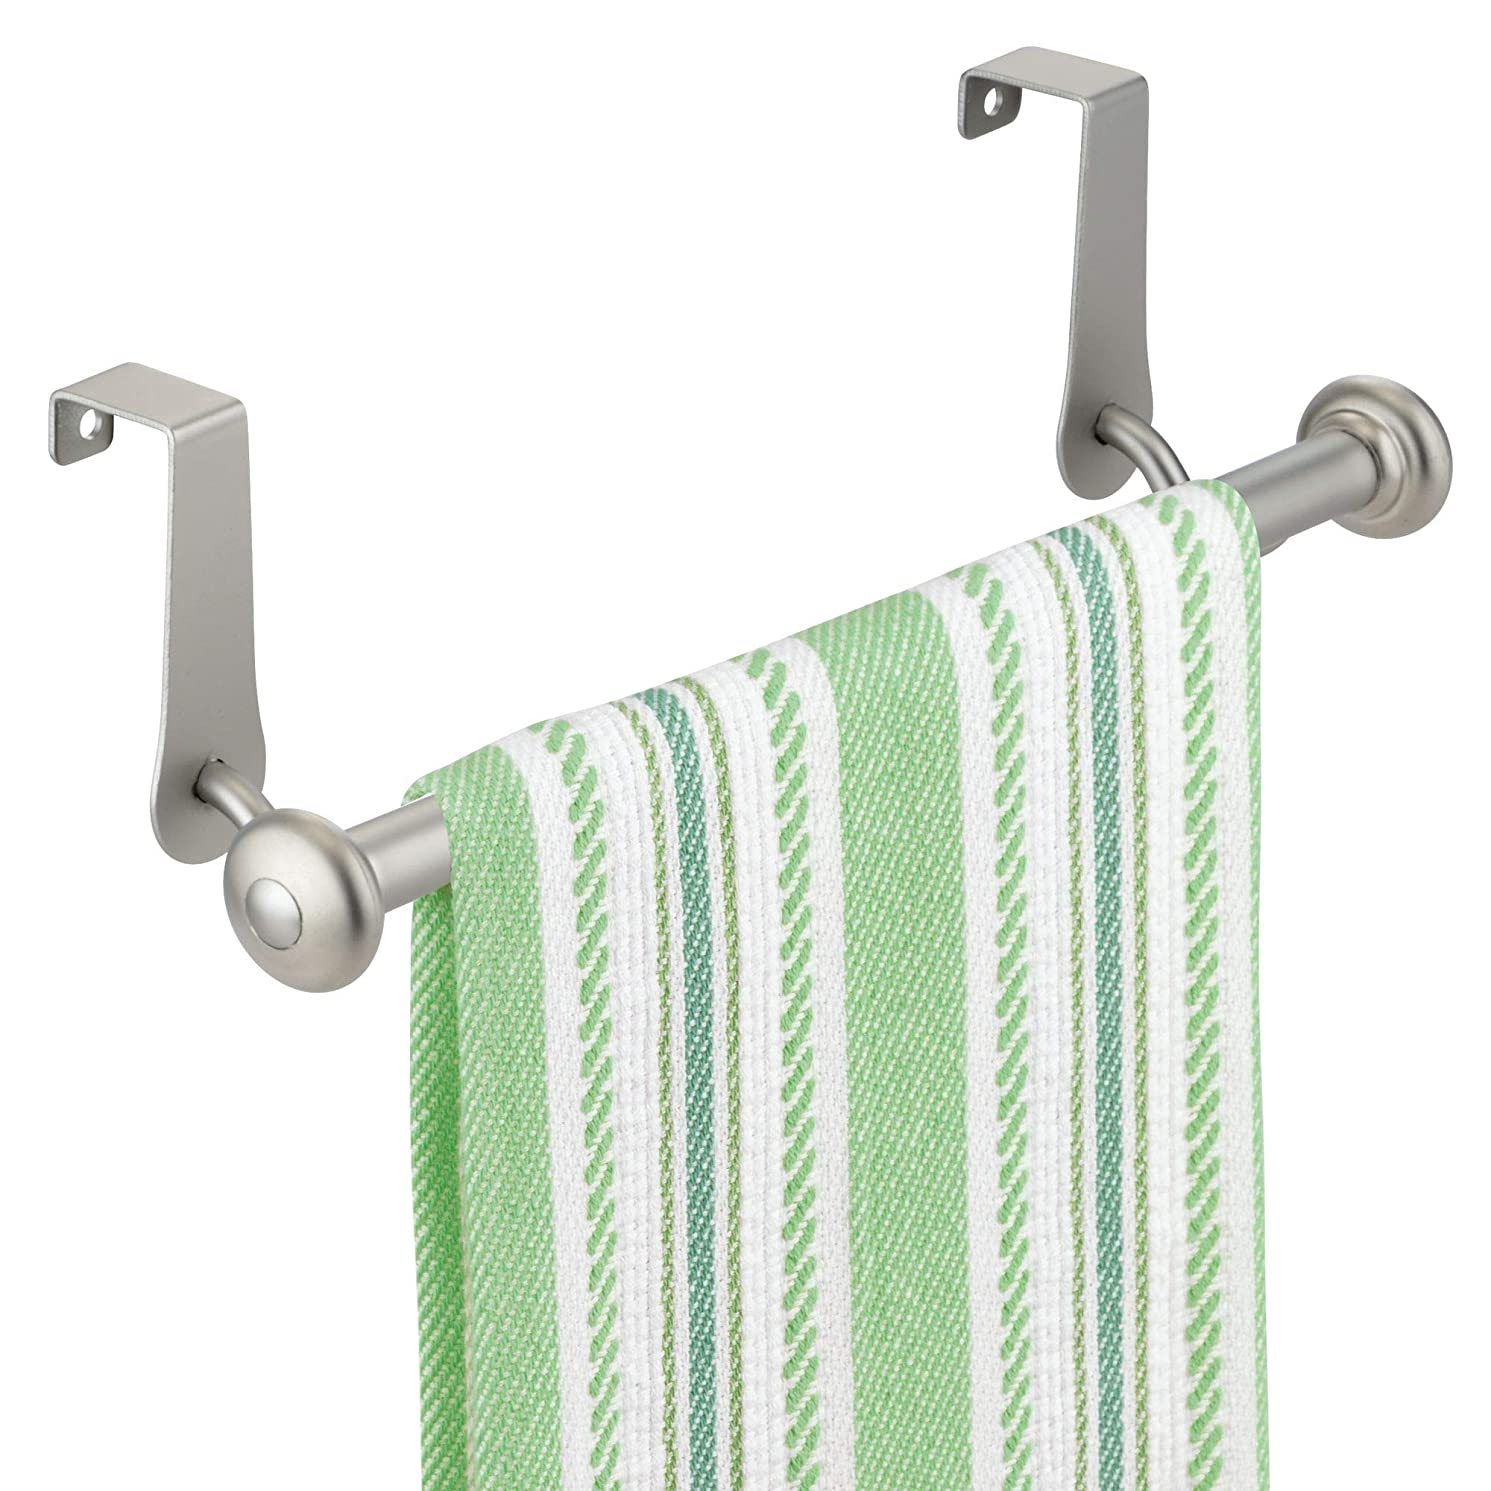 InterDesign York Metal Over the Cabinet Dish and Hand Towel Bar Holder for Kitchen, Bathroom, 3